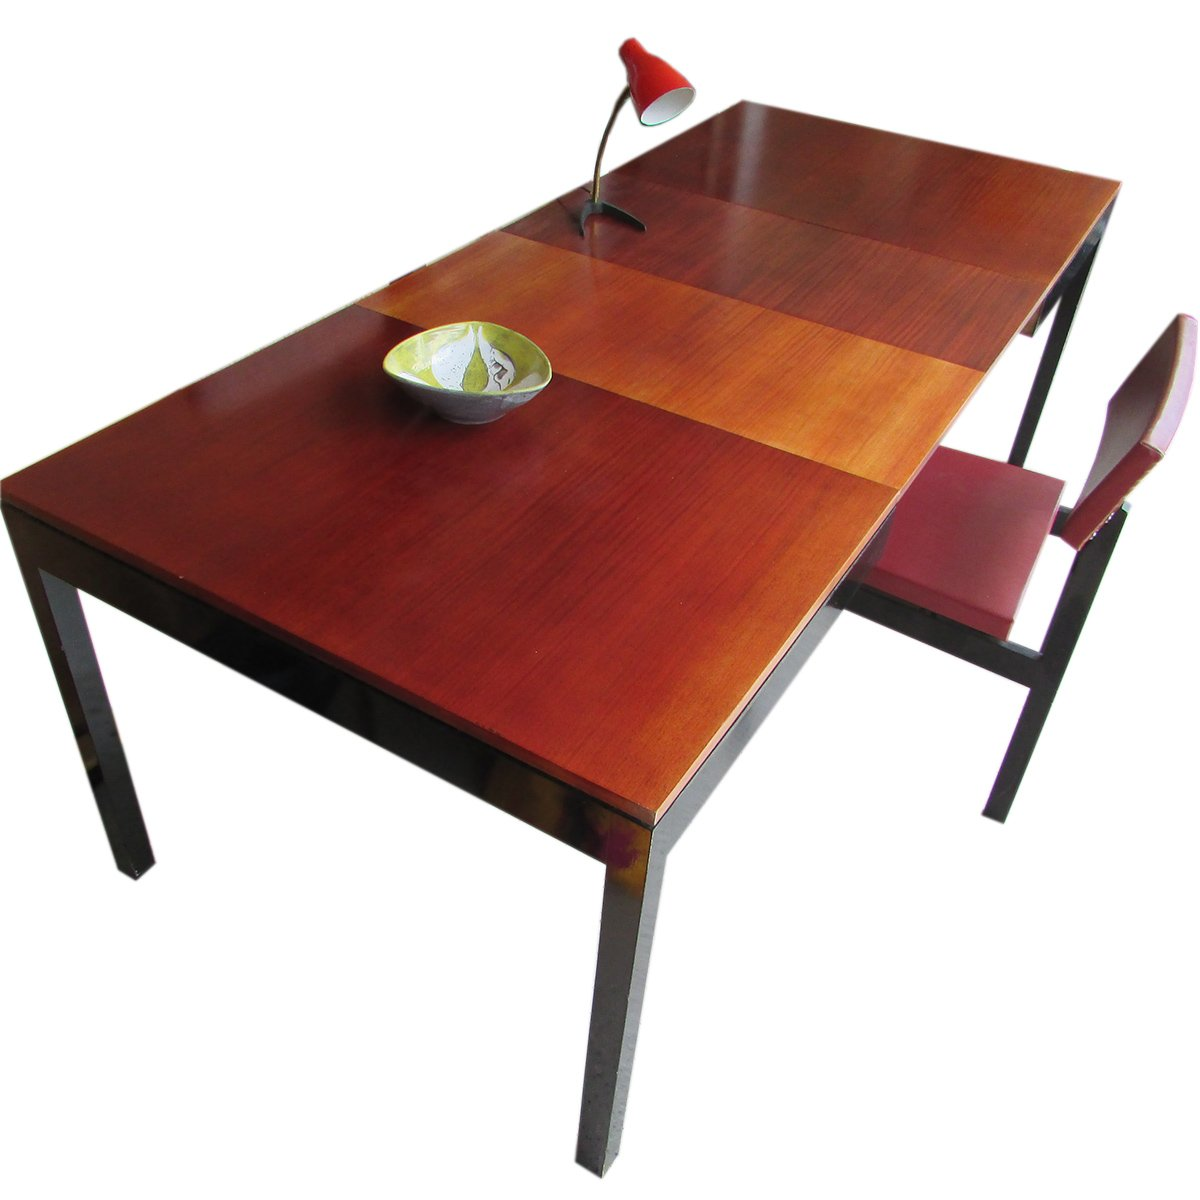 Swiss Extendable Teak Dining Table from BSC 1960s for  : swiss extendable teak dining table from bs c 1960s 6 from www.pamono.com size 1200 x 1200 jpeg 290kB